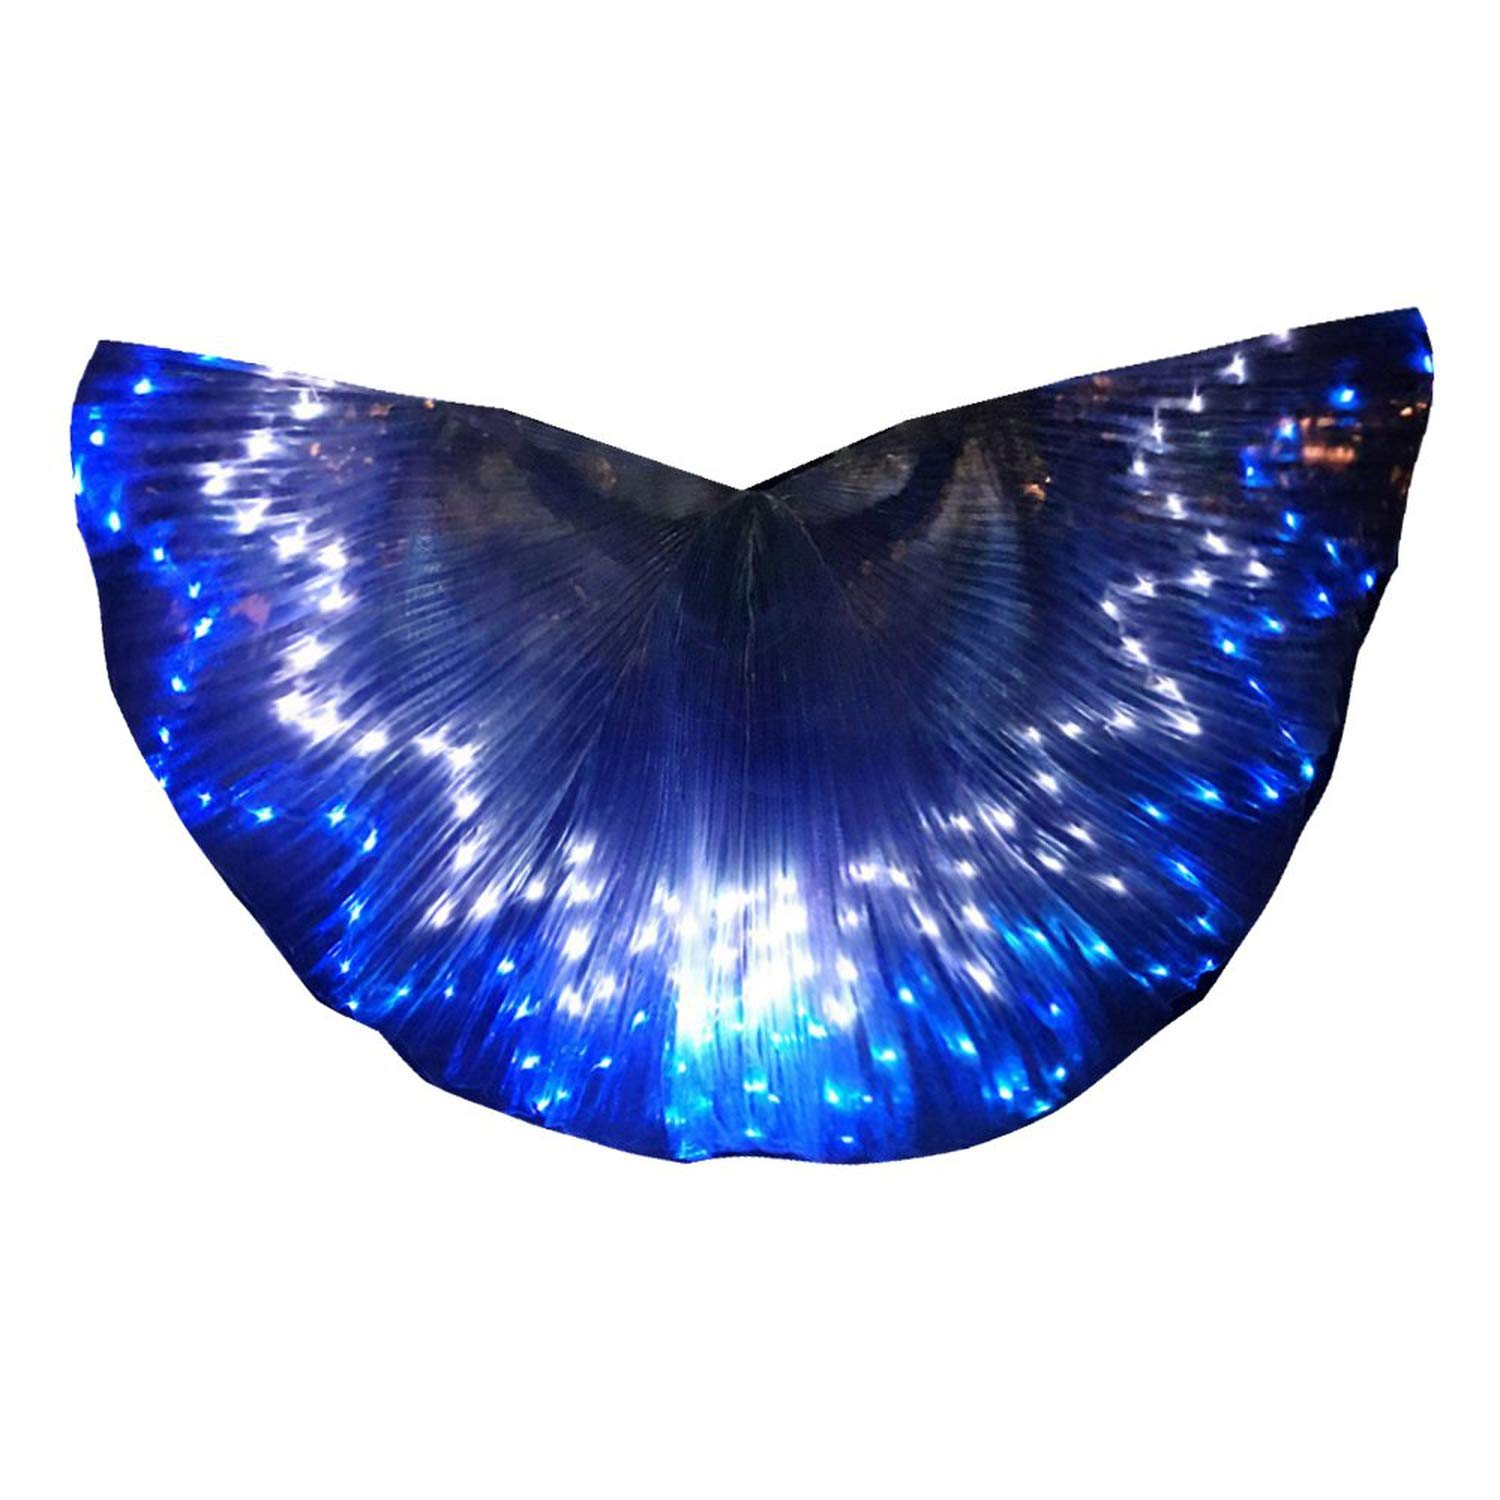 xiaoxiaoland εїз Costume Accessory LED Wings - Belly Dance Light Up Wings Party Club Wear with Flexible Sticks for Women/Girls360degree,Neck,Blue&whitePlus by xiaoxiaoland